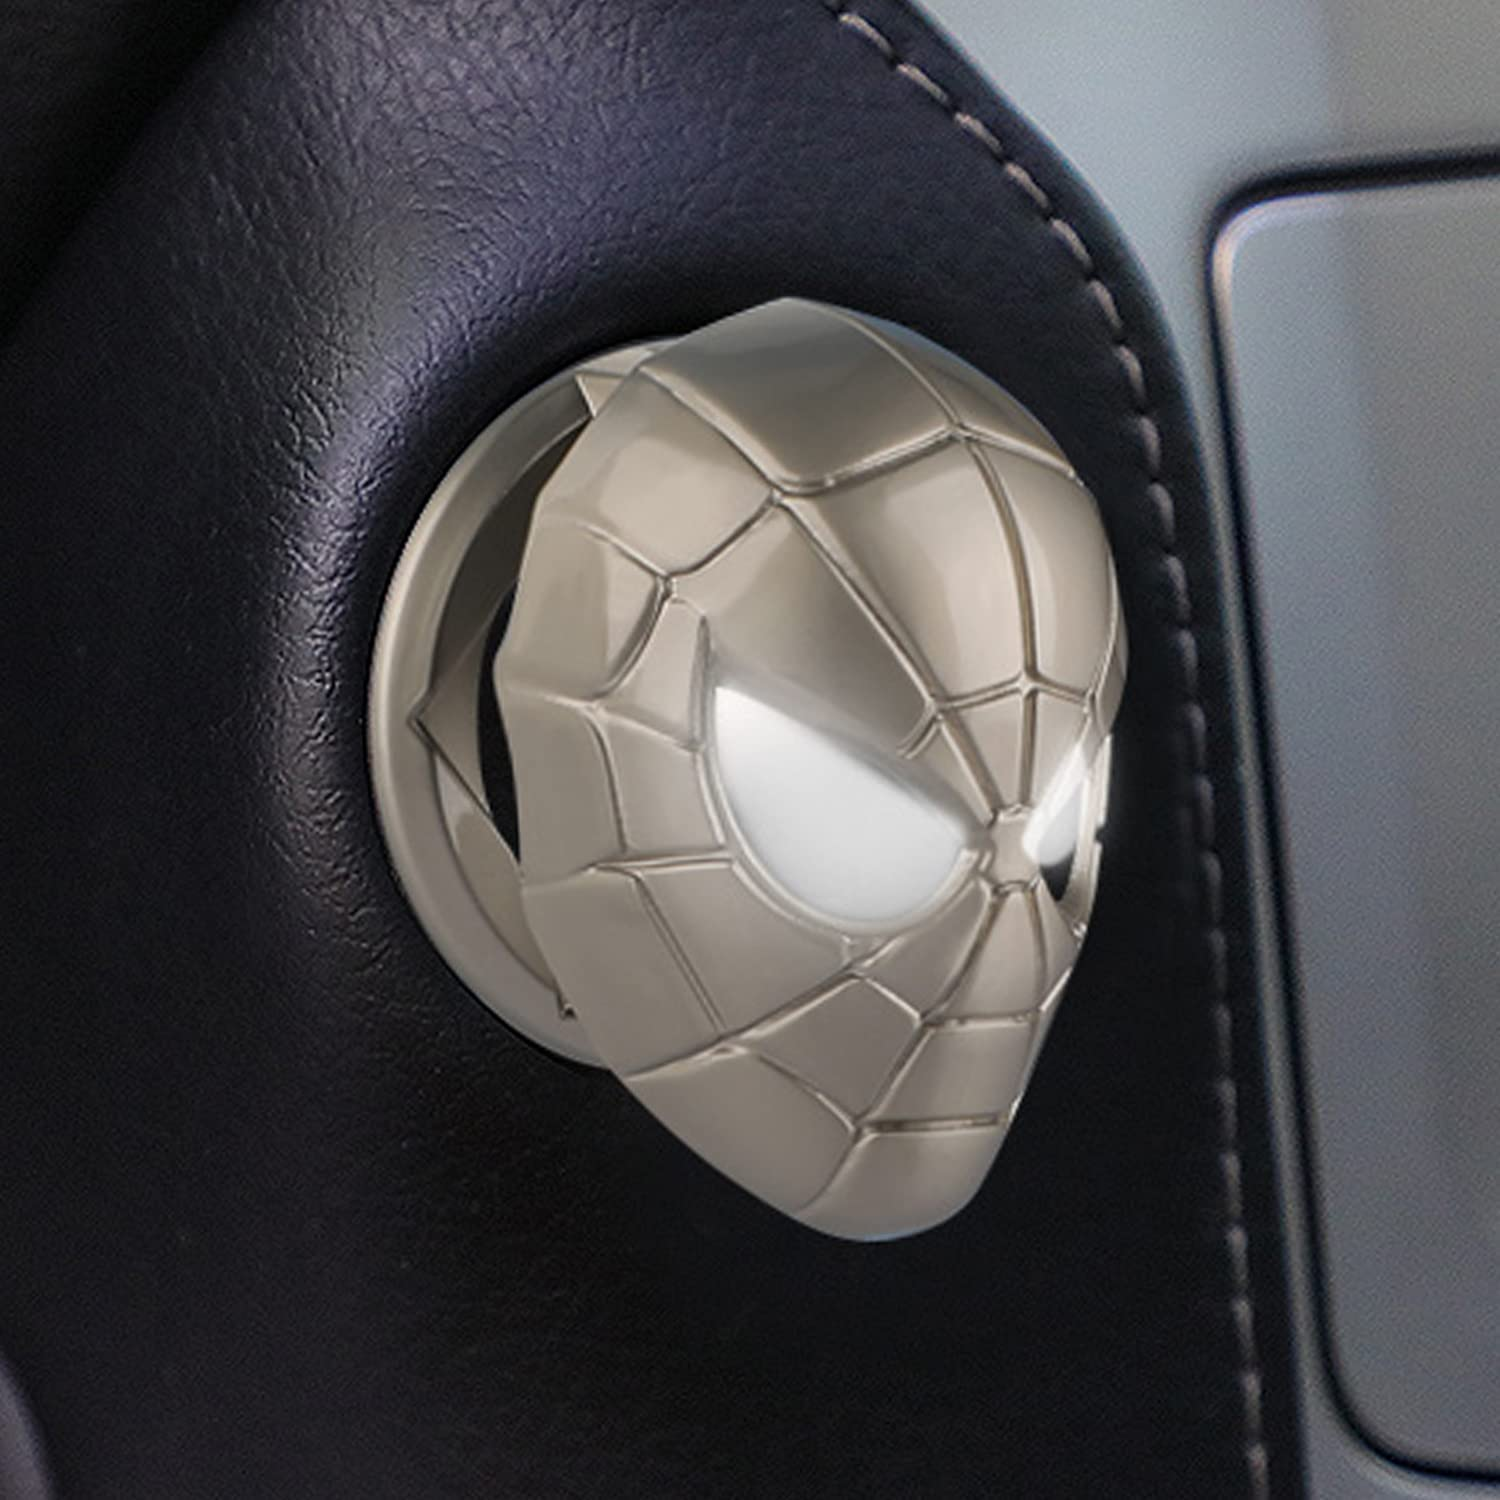 Courier shipping free shipping Car Engine Start Stop Button Sales of SALE items from new works - Push Cover Spiderman